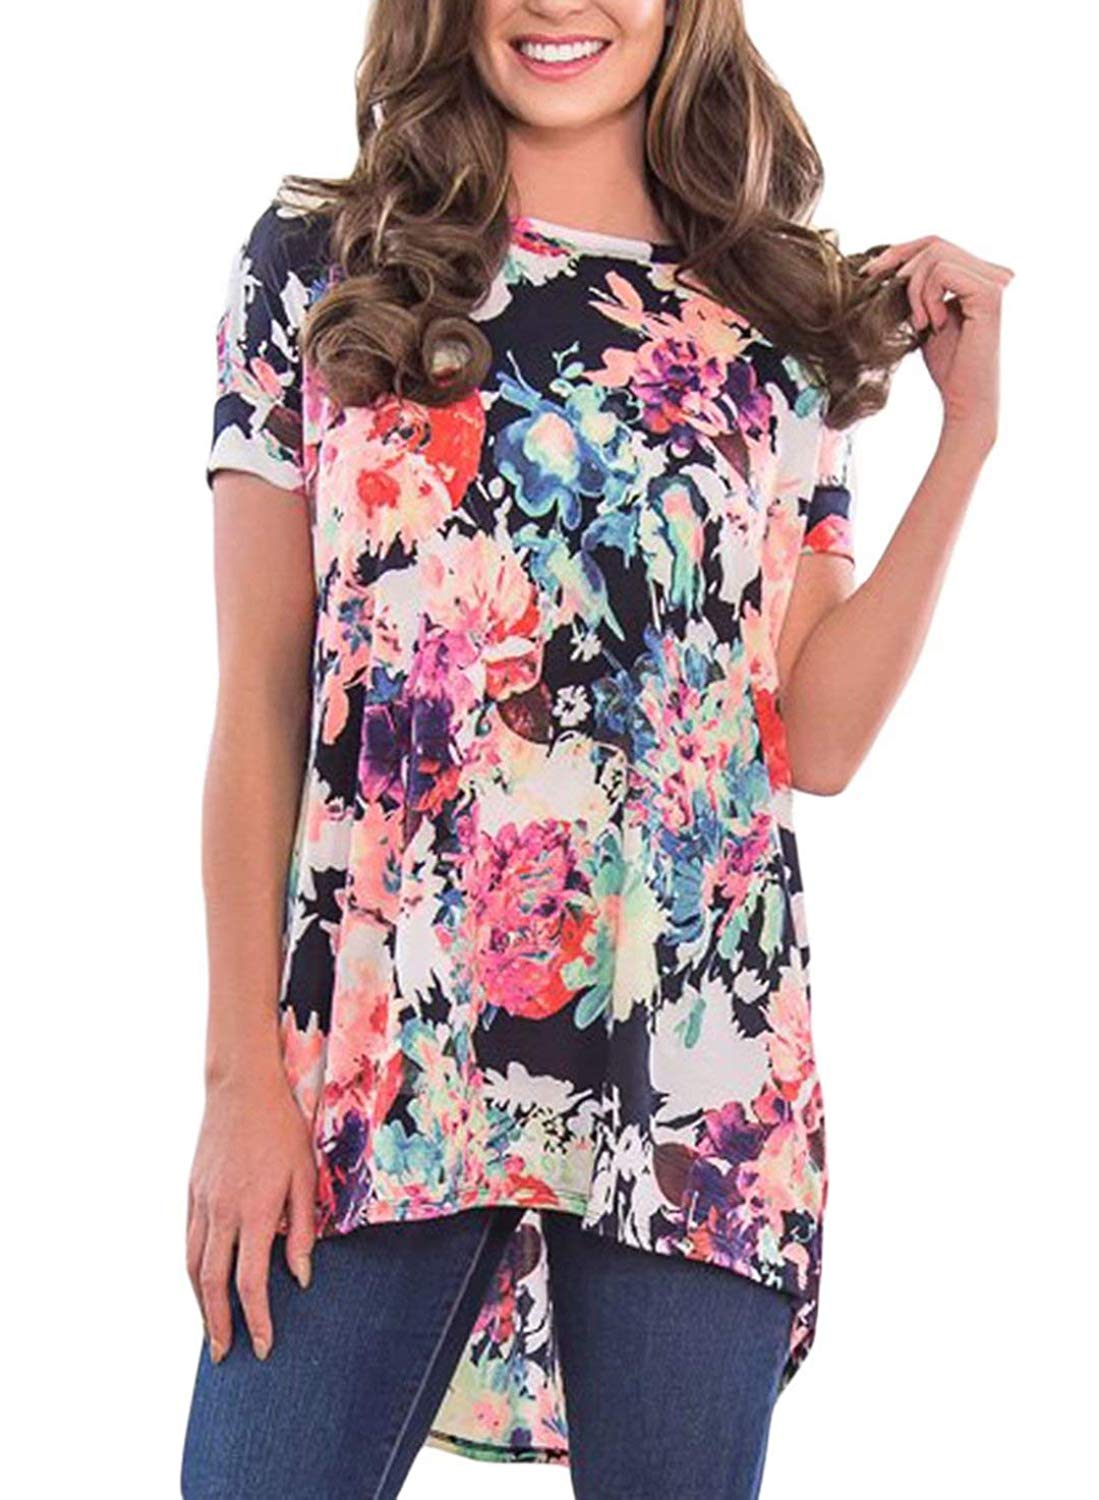 56680c18 Get Quotations · Asvivid Women's Floral Print Criss Cross Back T-Shirt High  Low Casual Tunic Tops Blouse